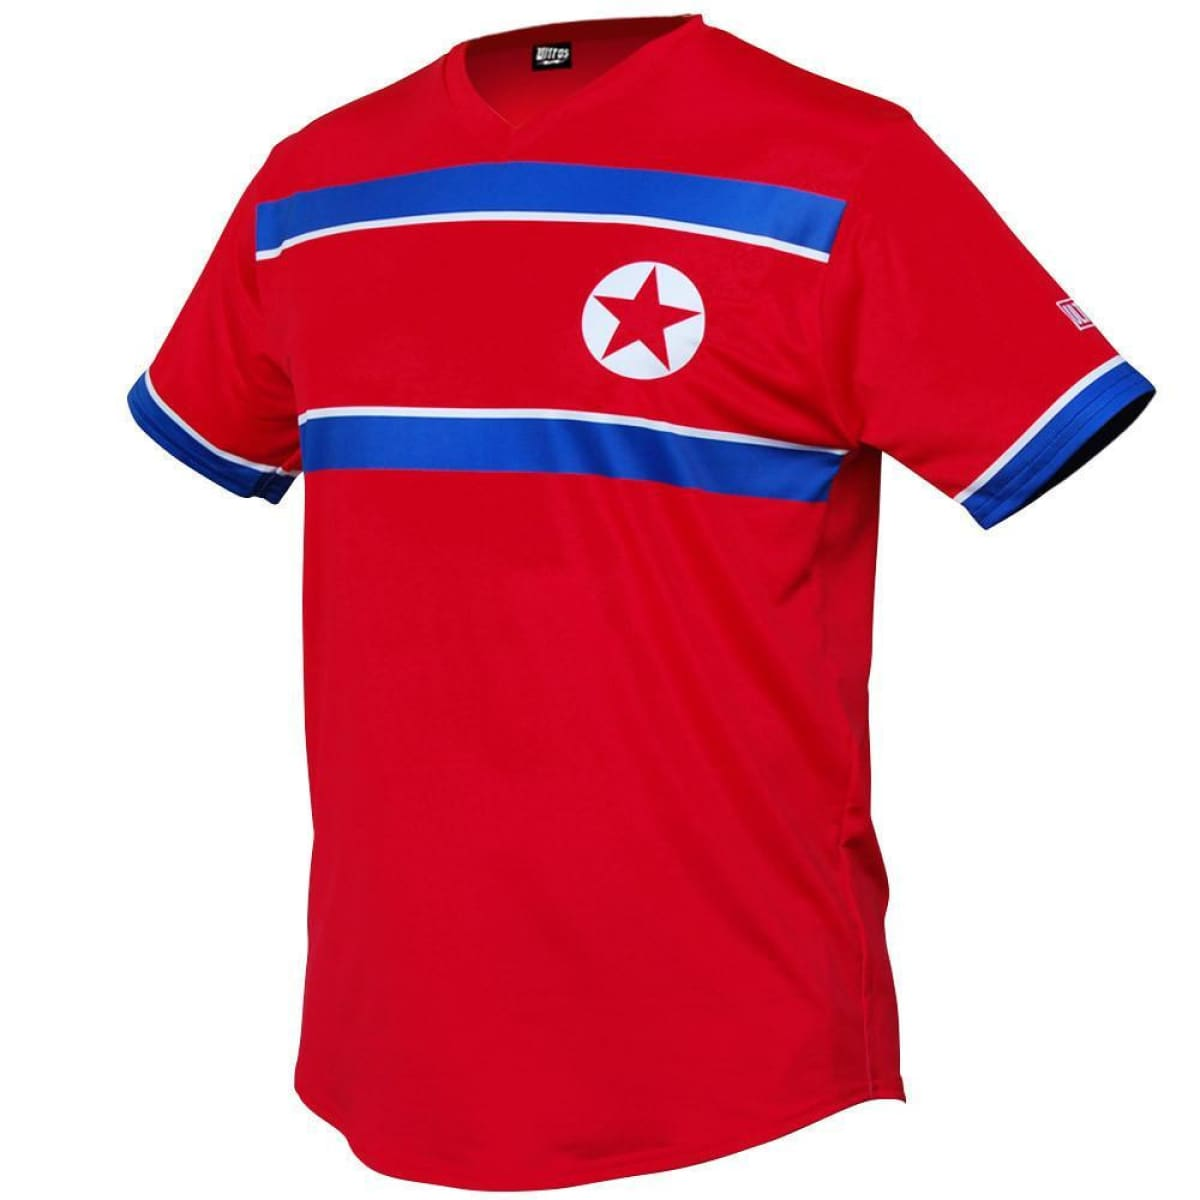 North Korea Star Soccer Jersey - Red / Toddler 1 / No - Ultras Country Soccer Jerseys